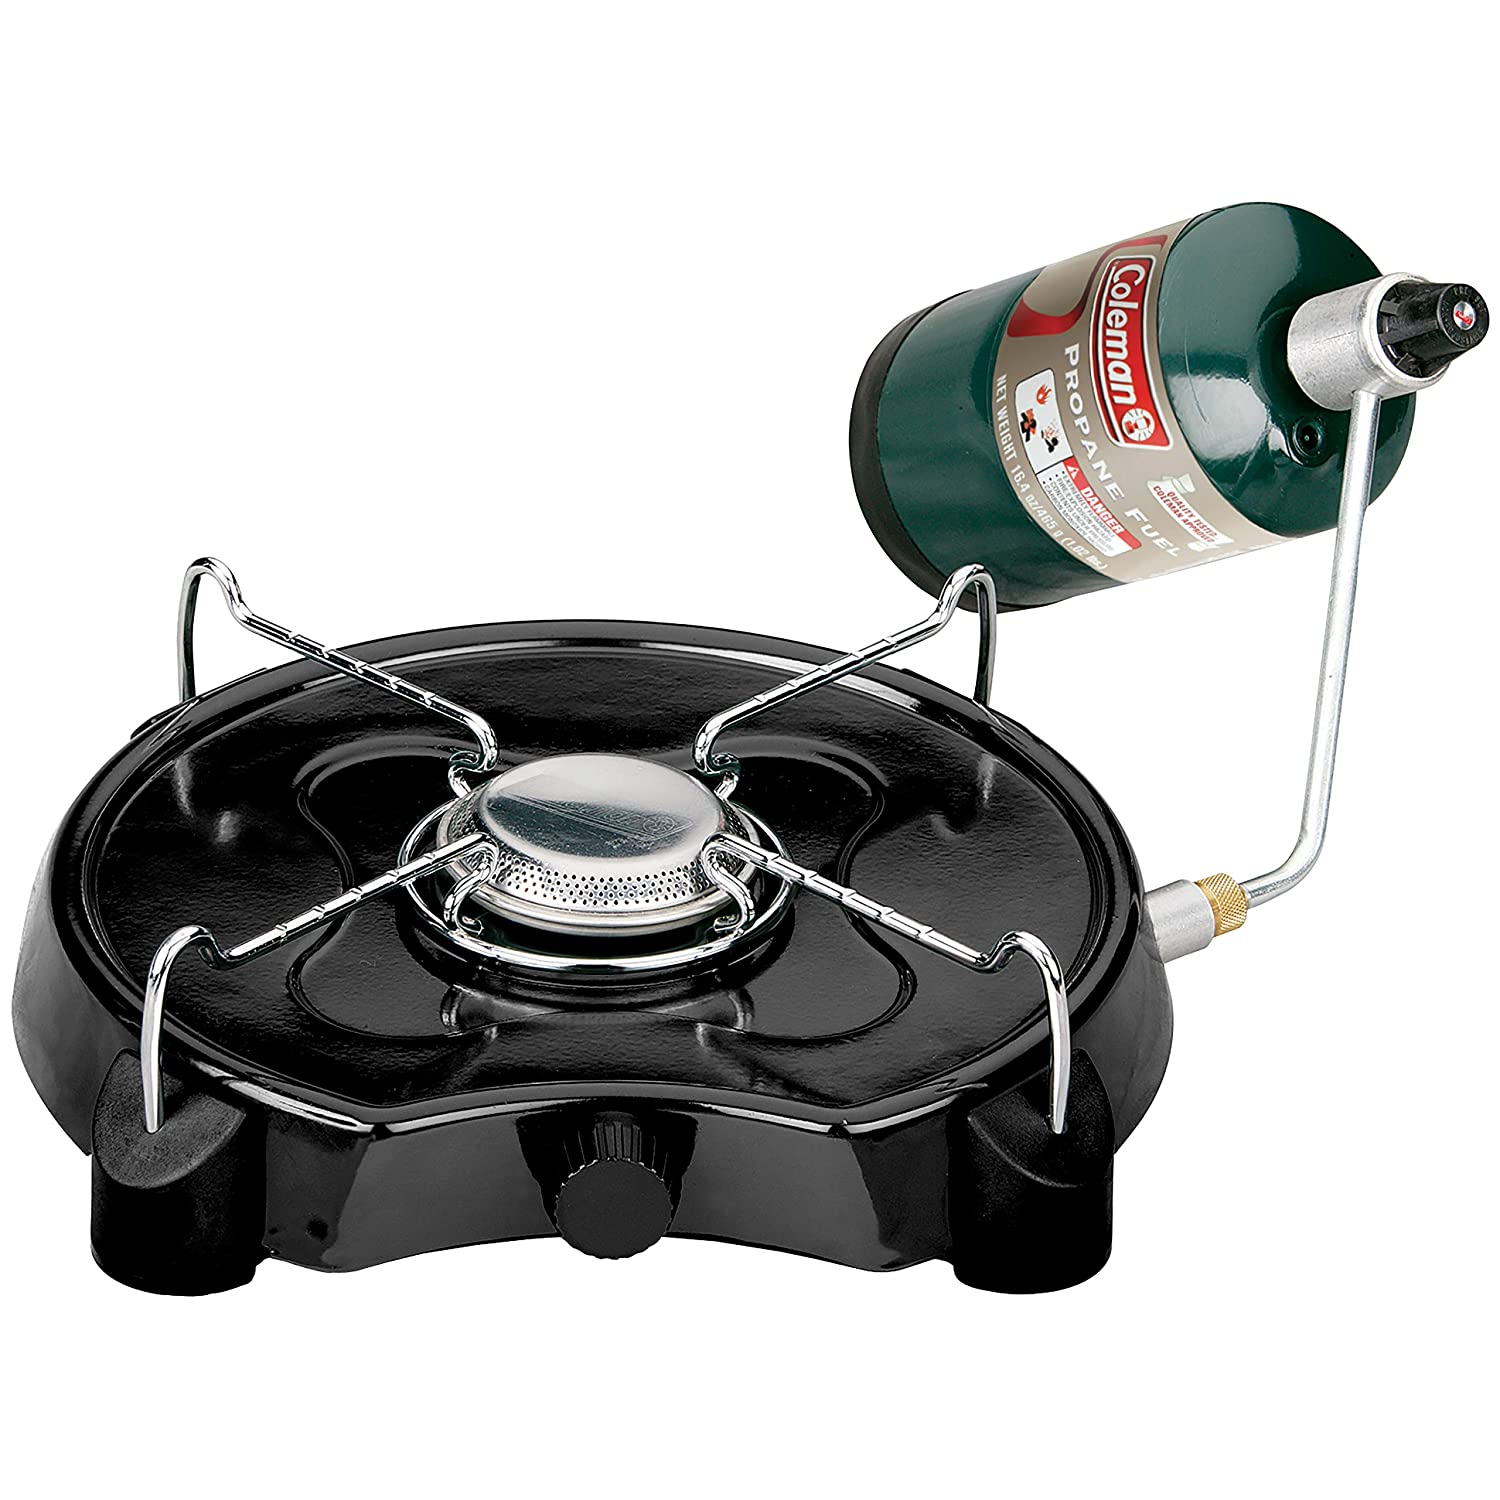 Coleman PowerPack Propane Stove, Single Burner, Coleman Green - 2000020931